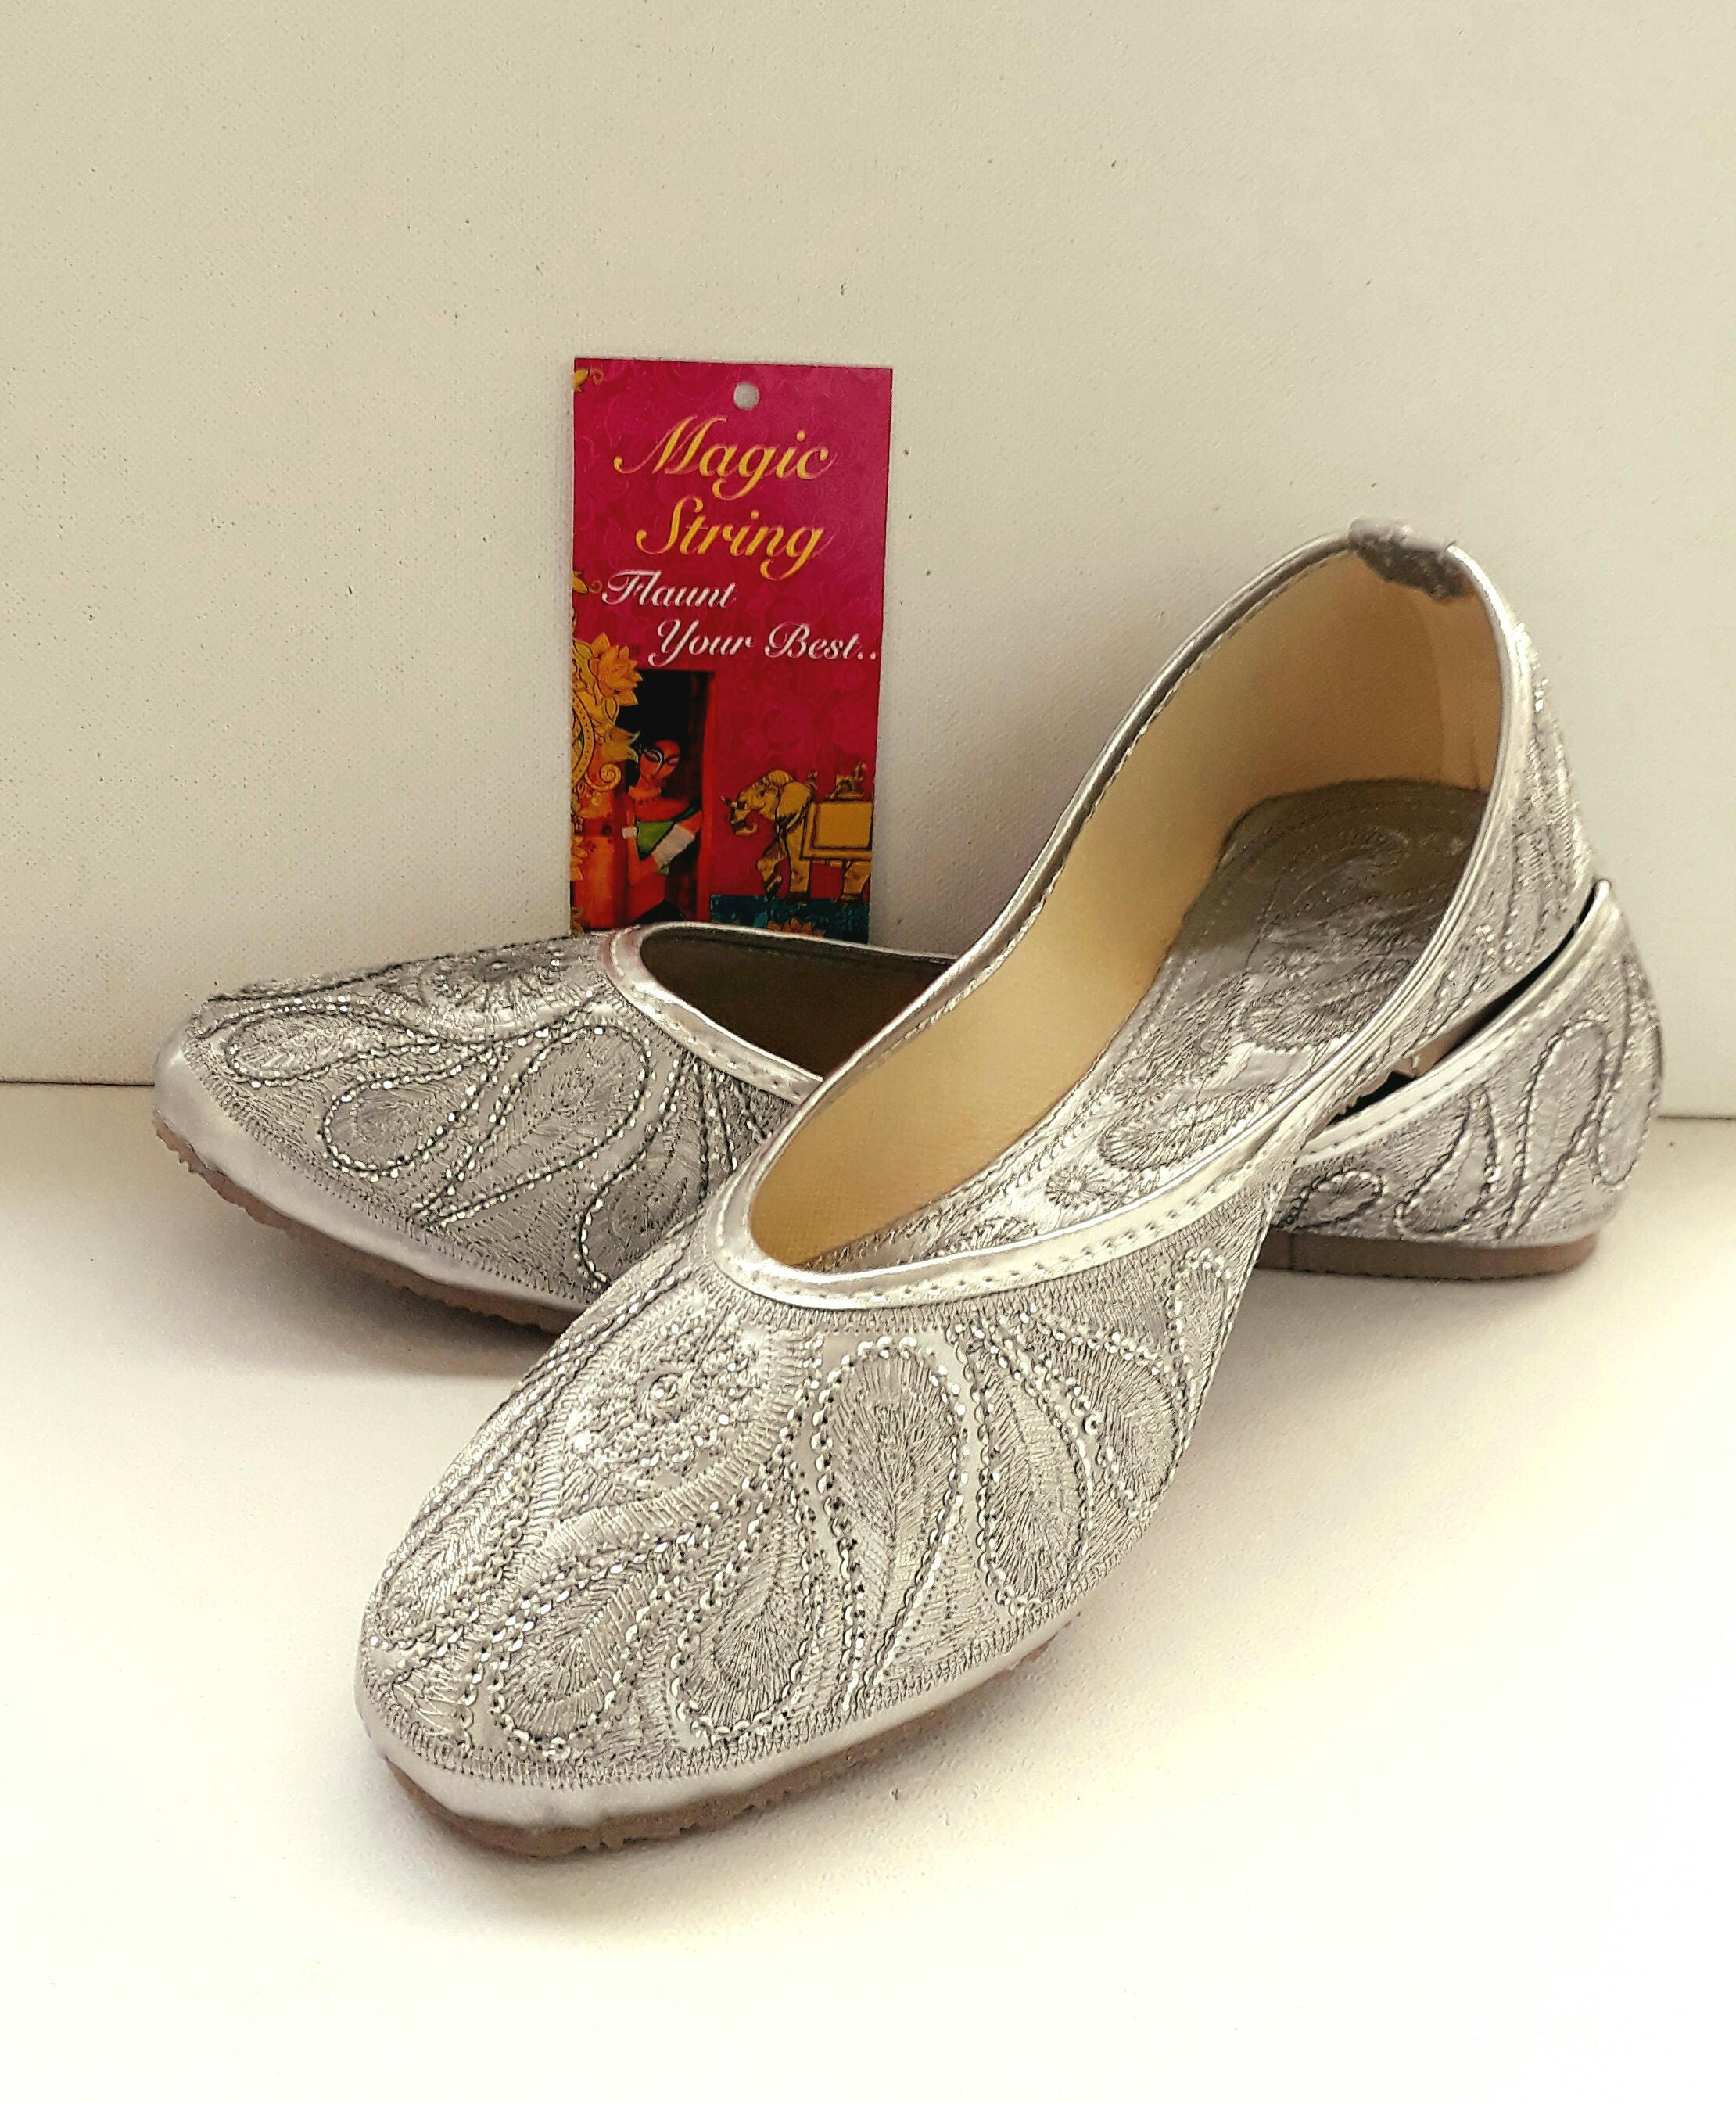 Silver Flats For Wedding.Silver Flats Wedding Flats Women Ballet Flats Women Shoes Silver Wedding Shoes Embroidered Bridal Shoes Wedding Shoes Royal Styled Jooties